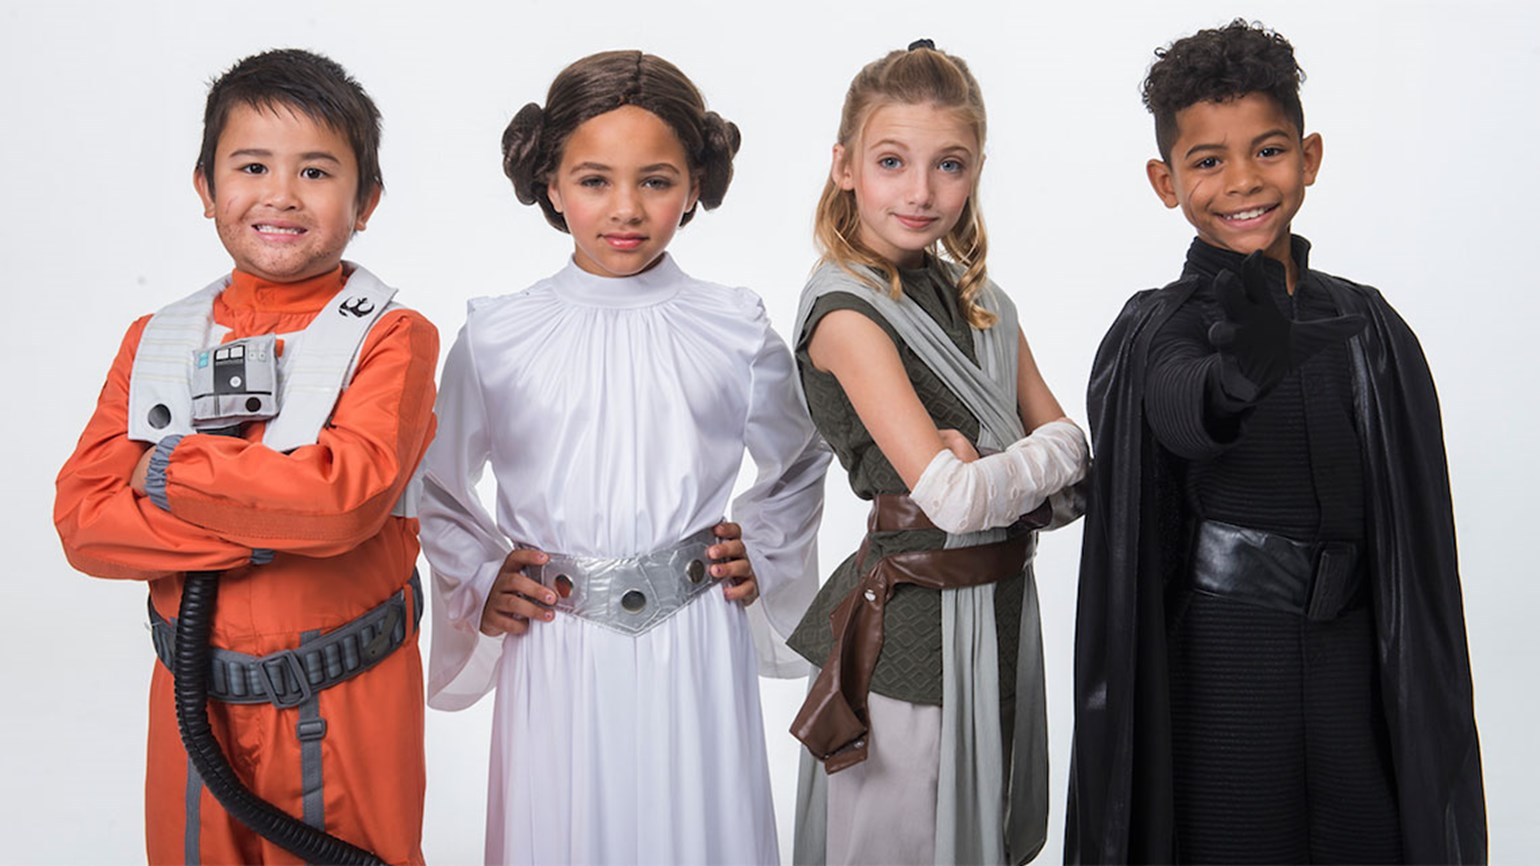 Star Wars makeovers coming to Disney Fantasy cruises